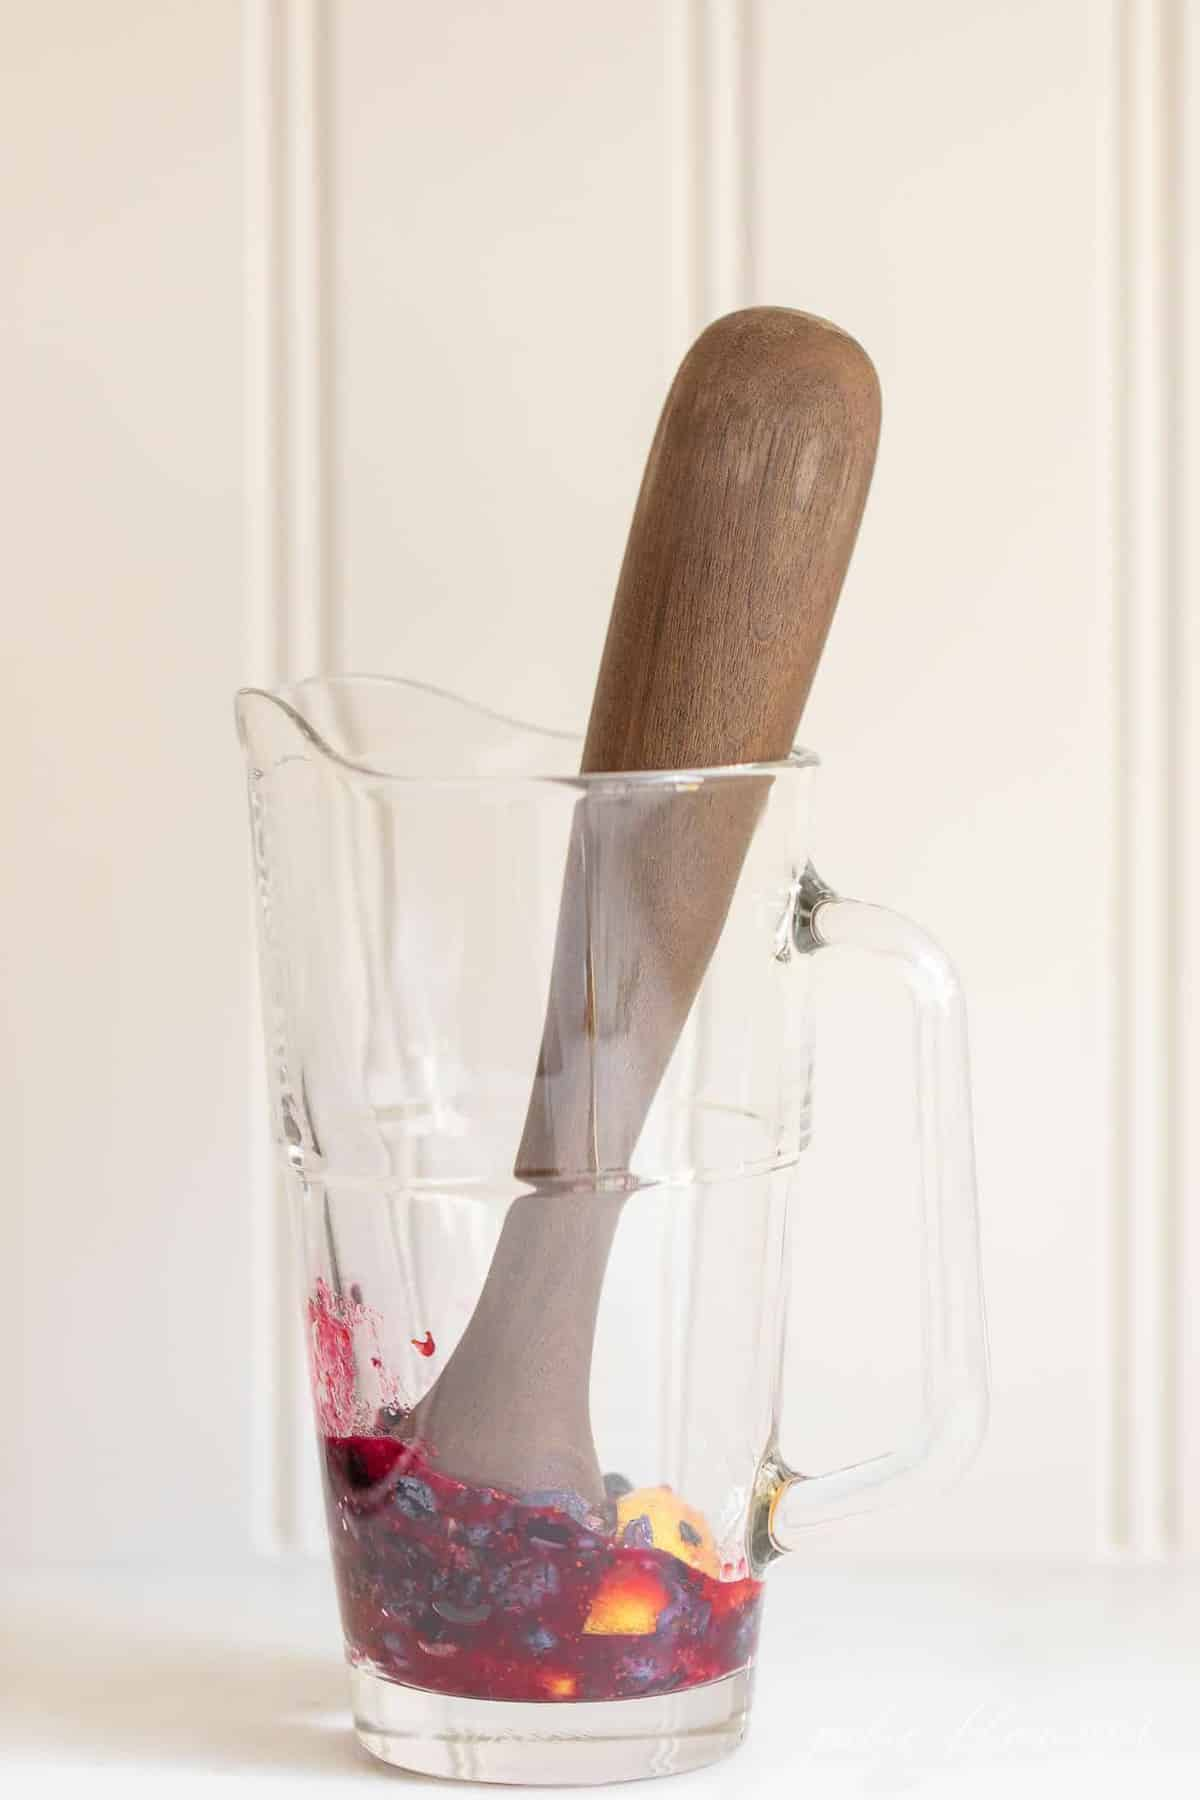 Clear pitcher, white surface, muddler inside smashing fruit for a bourbon smash recipe.